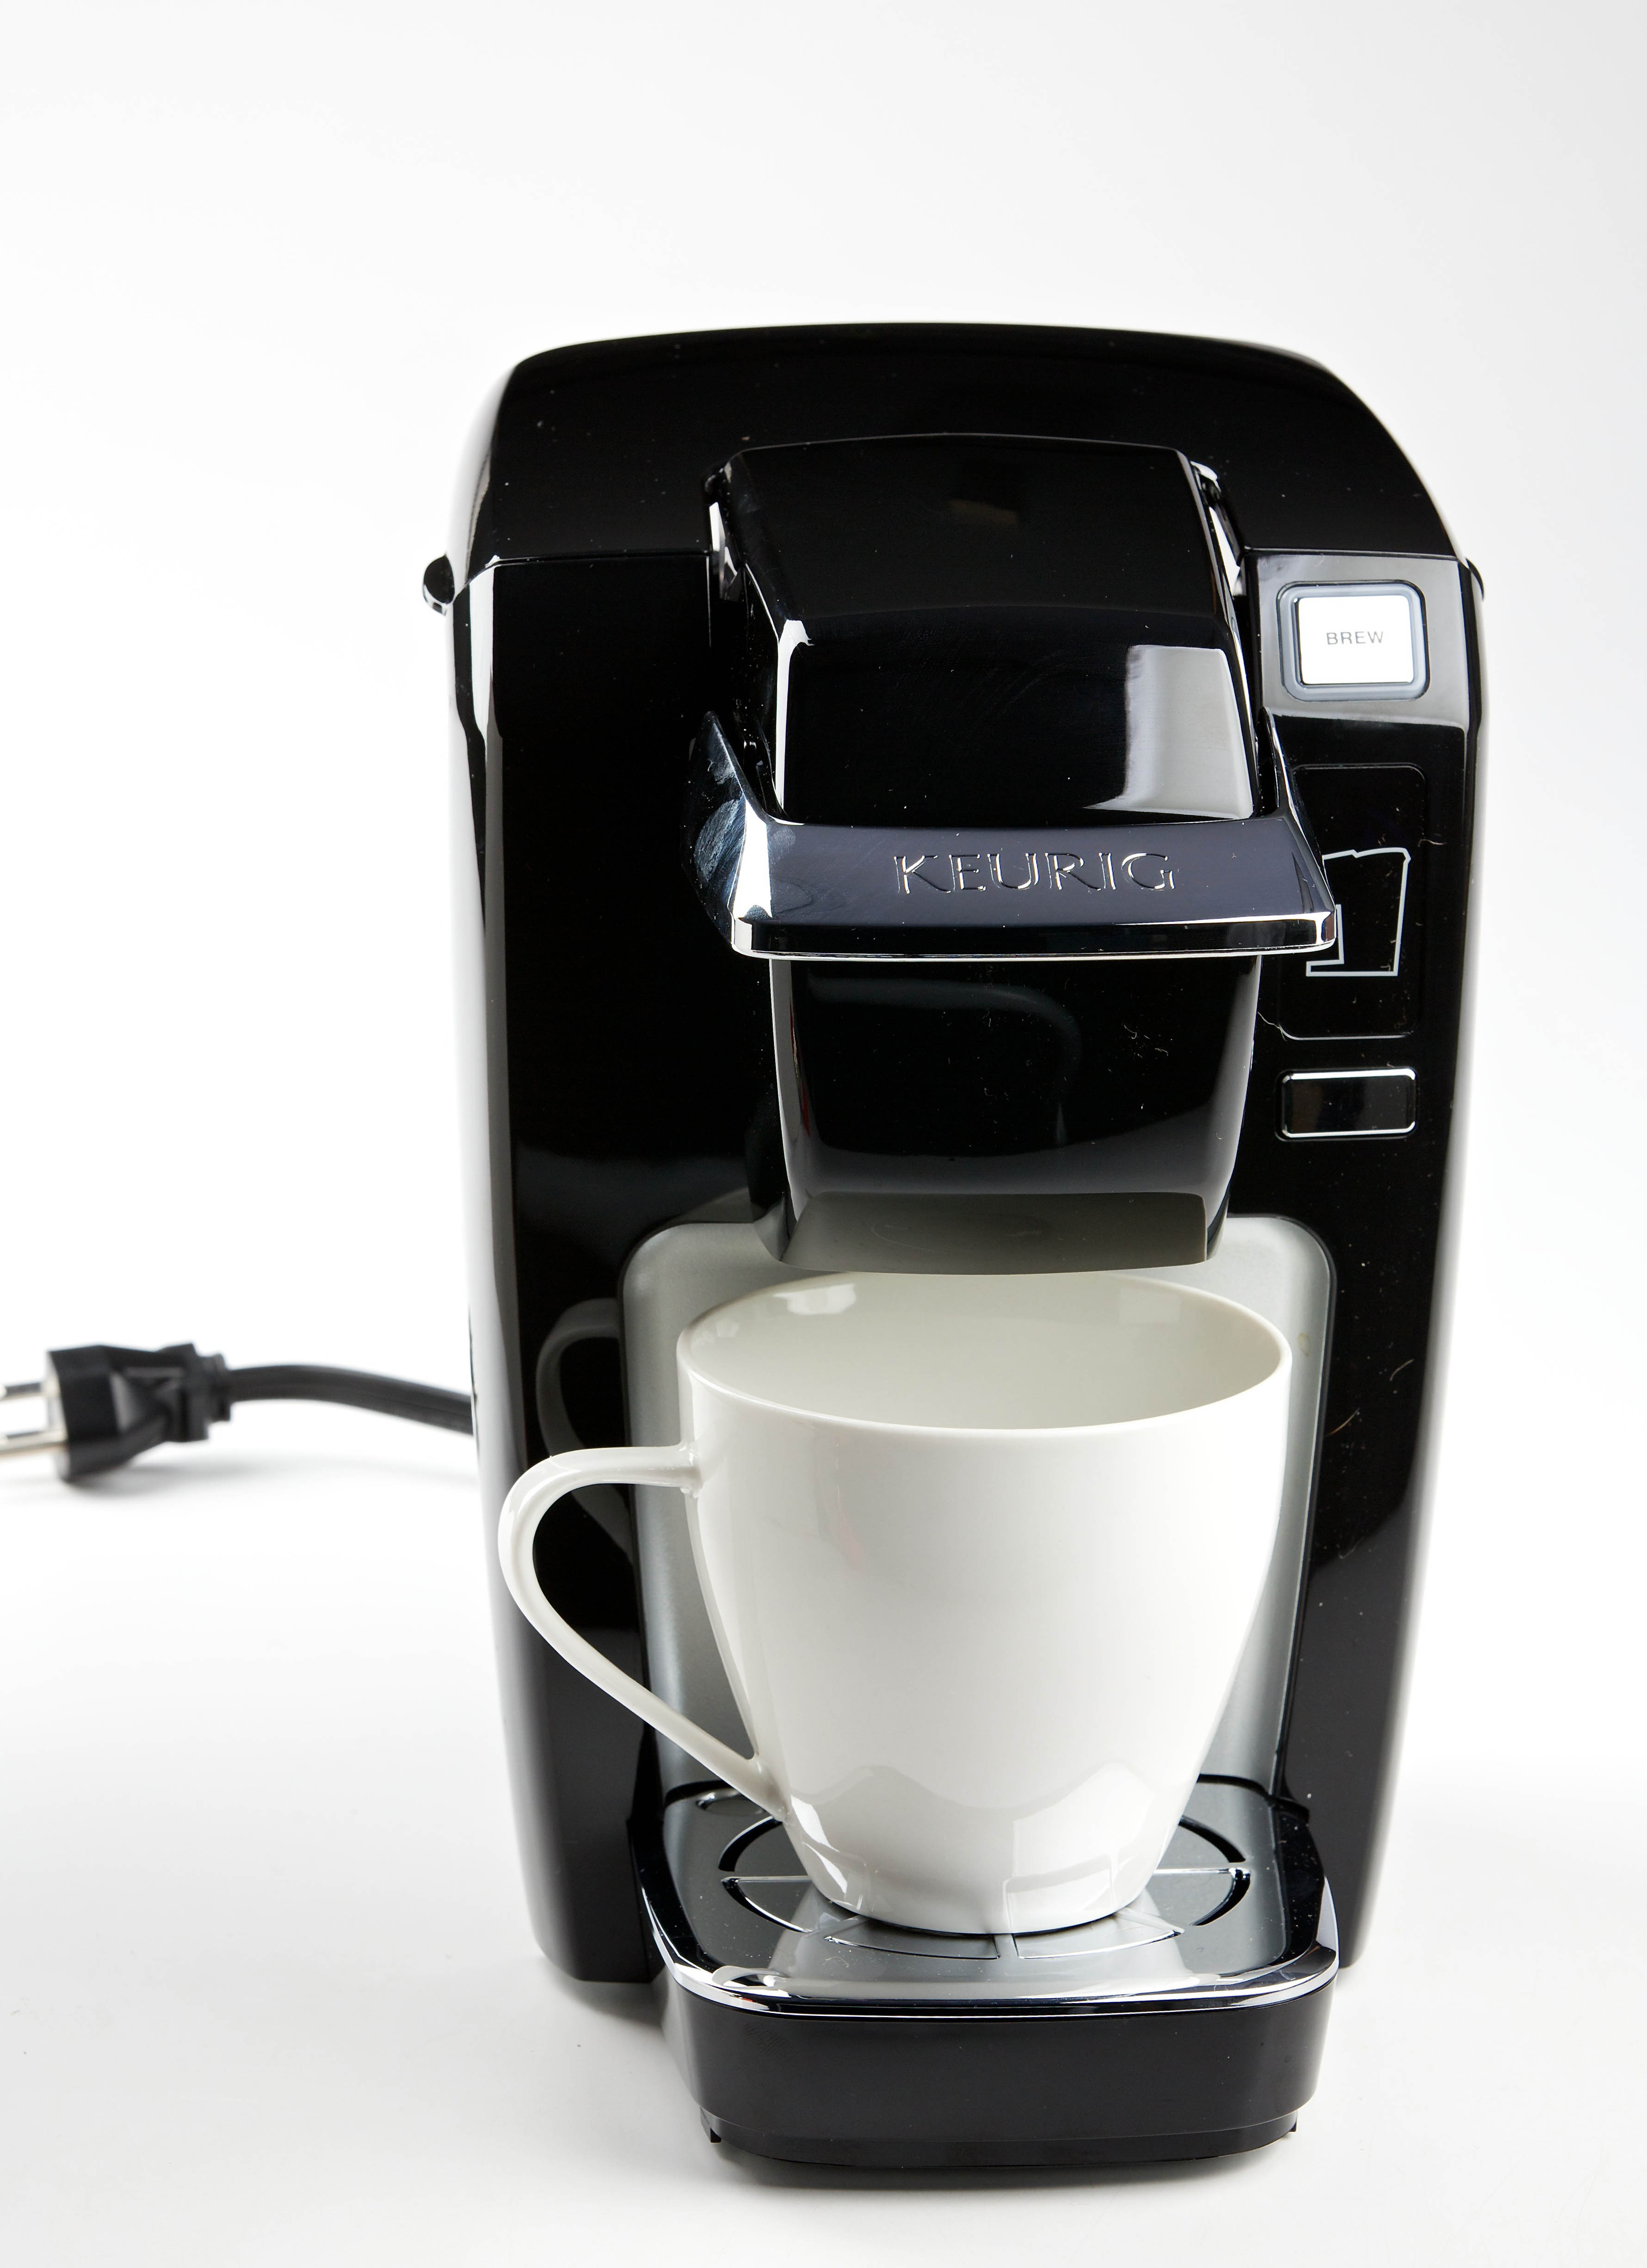 Coffee Maker How To Use : Facts About Keurig Coffee Makers - Trivia About Keurig